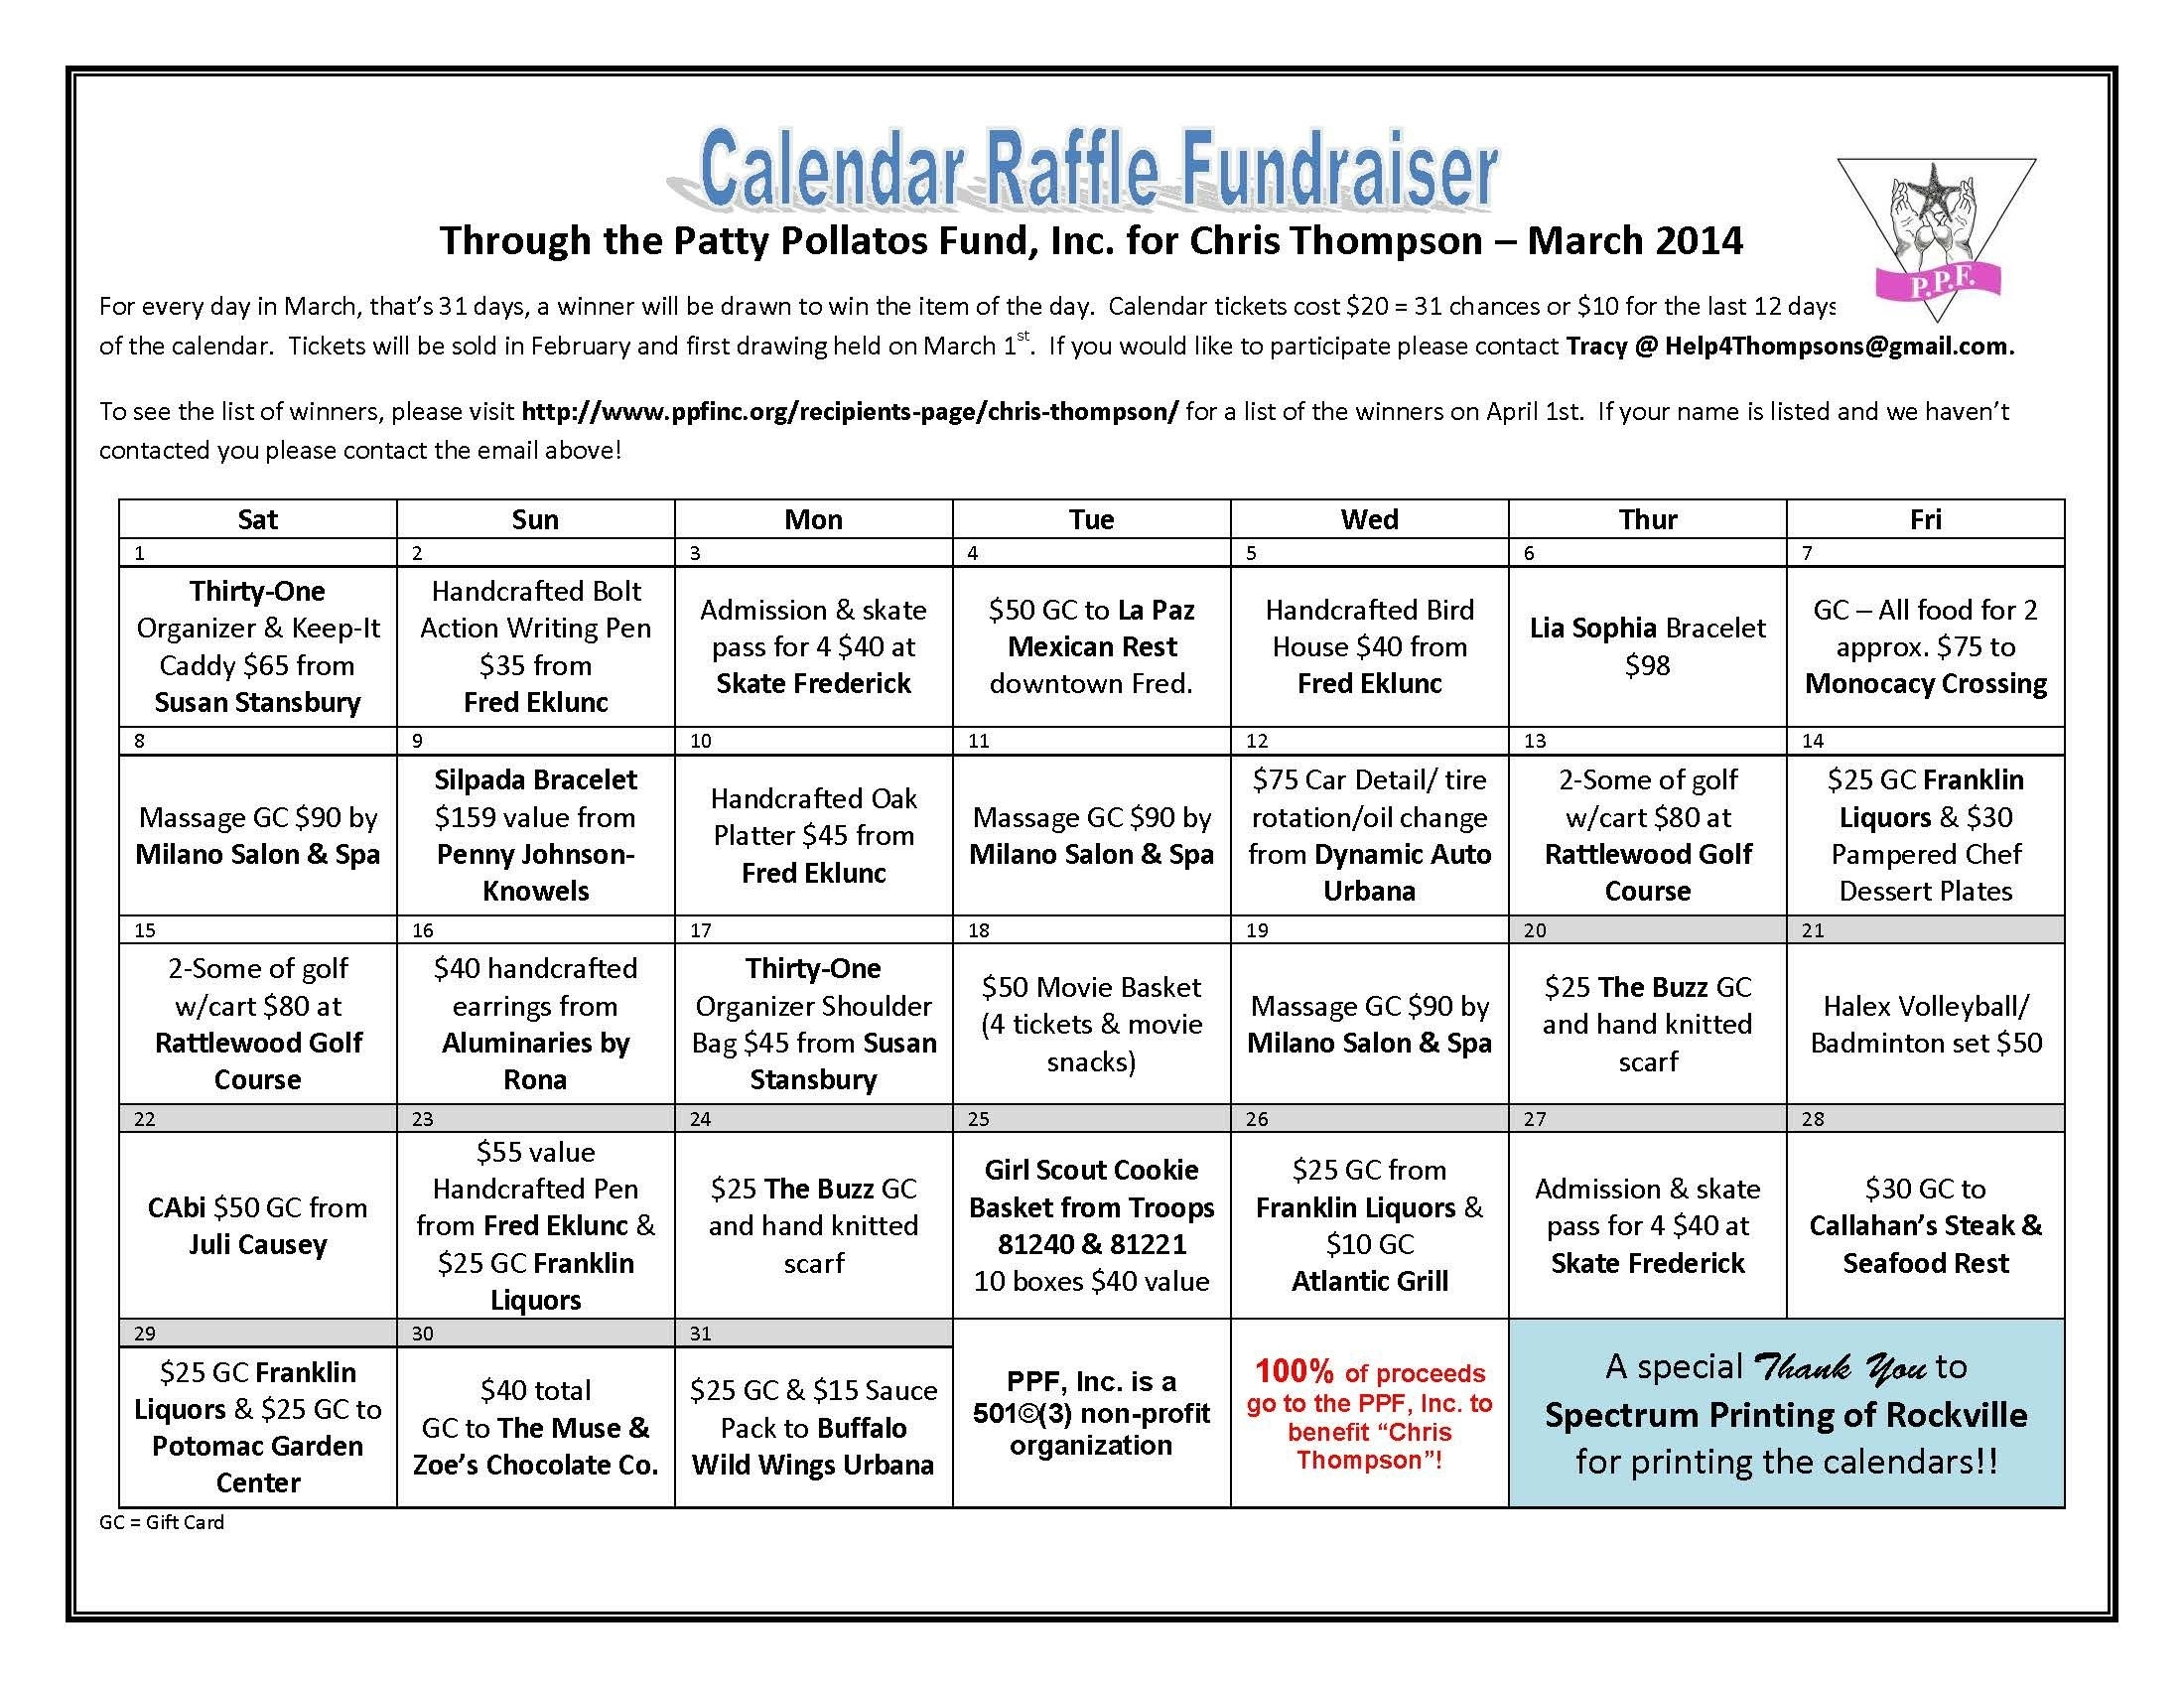 Chris Thompson Calendar Raffle - Patty Pollatos Fund Free Calendar Raffle Template